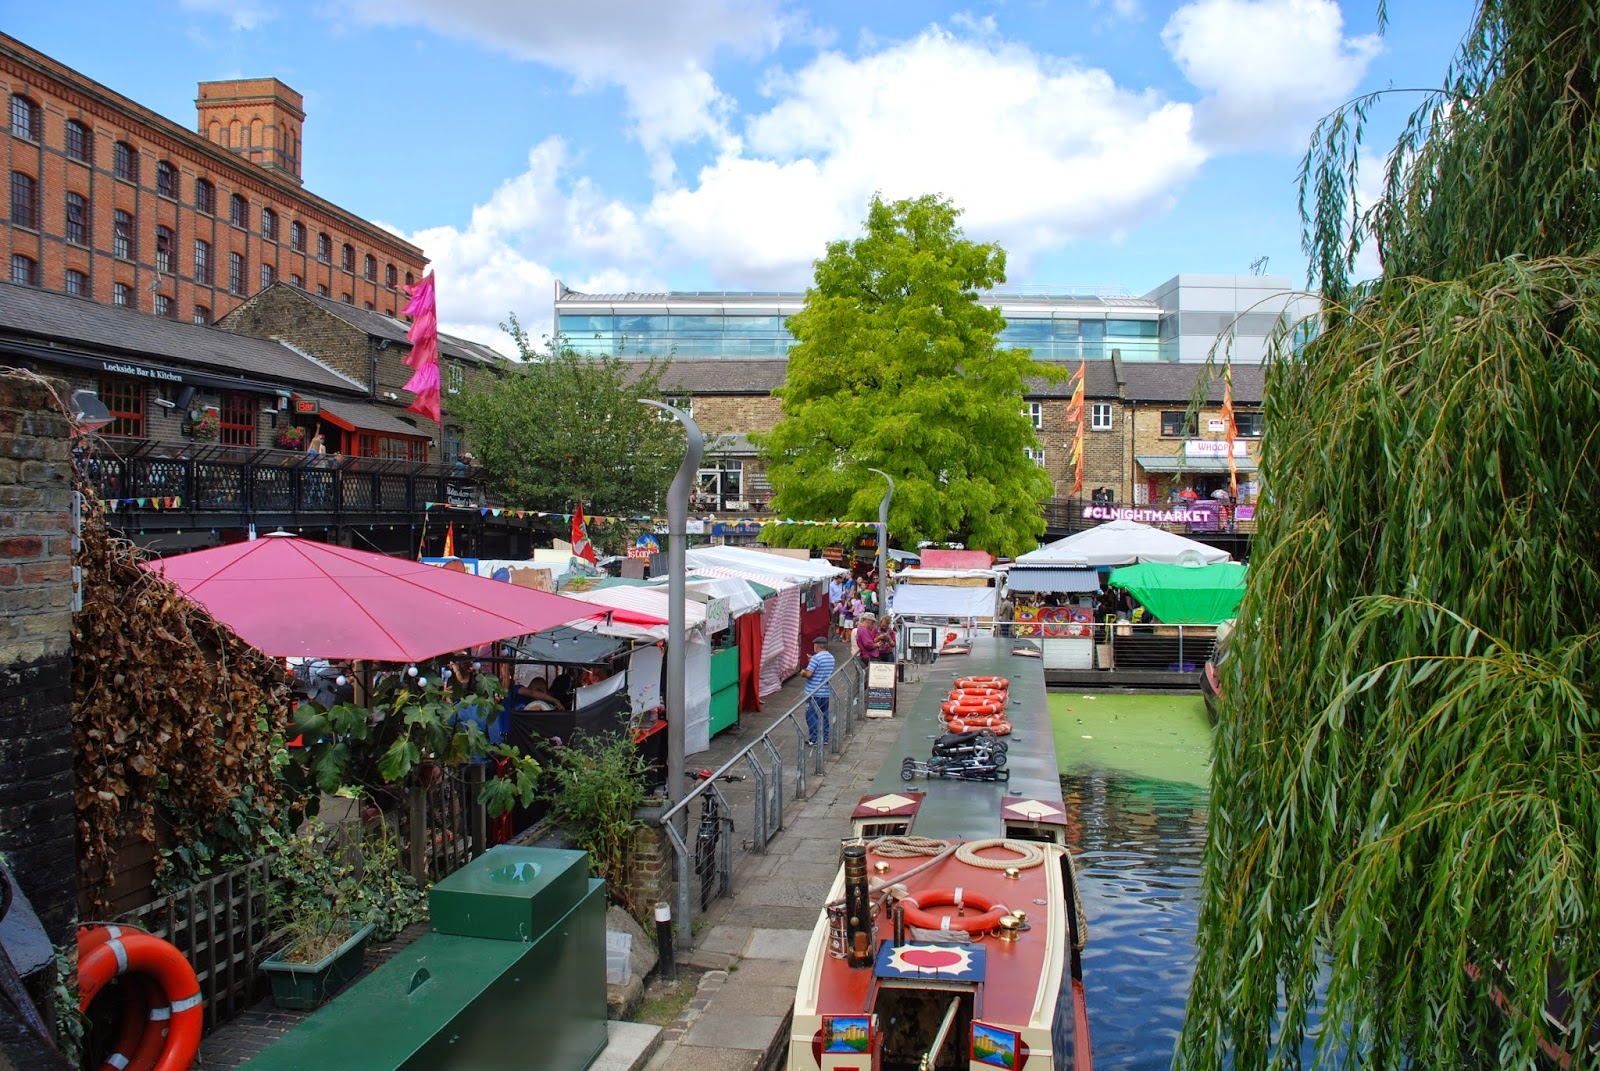 Camden Lock,Regent's Canal, London